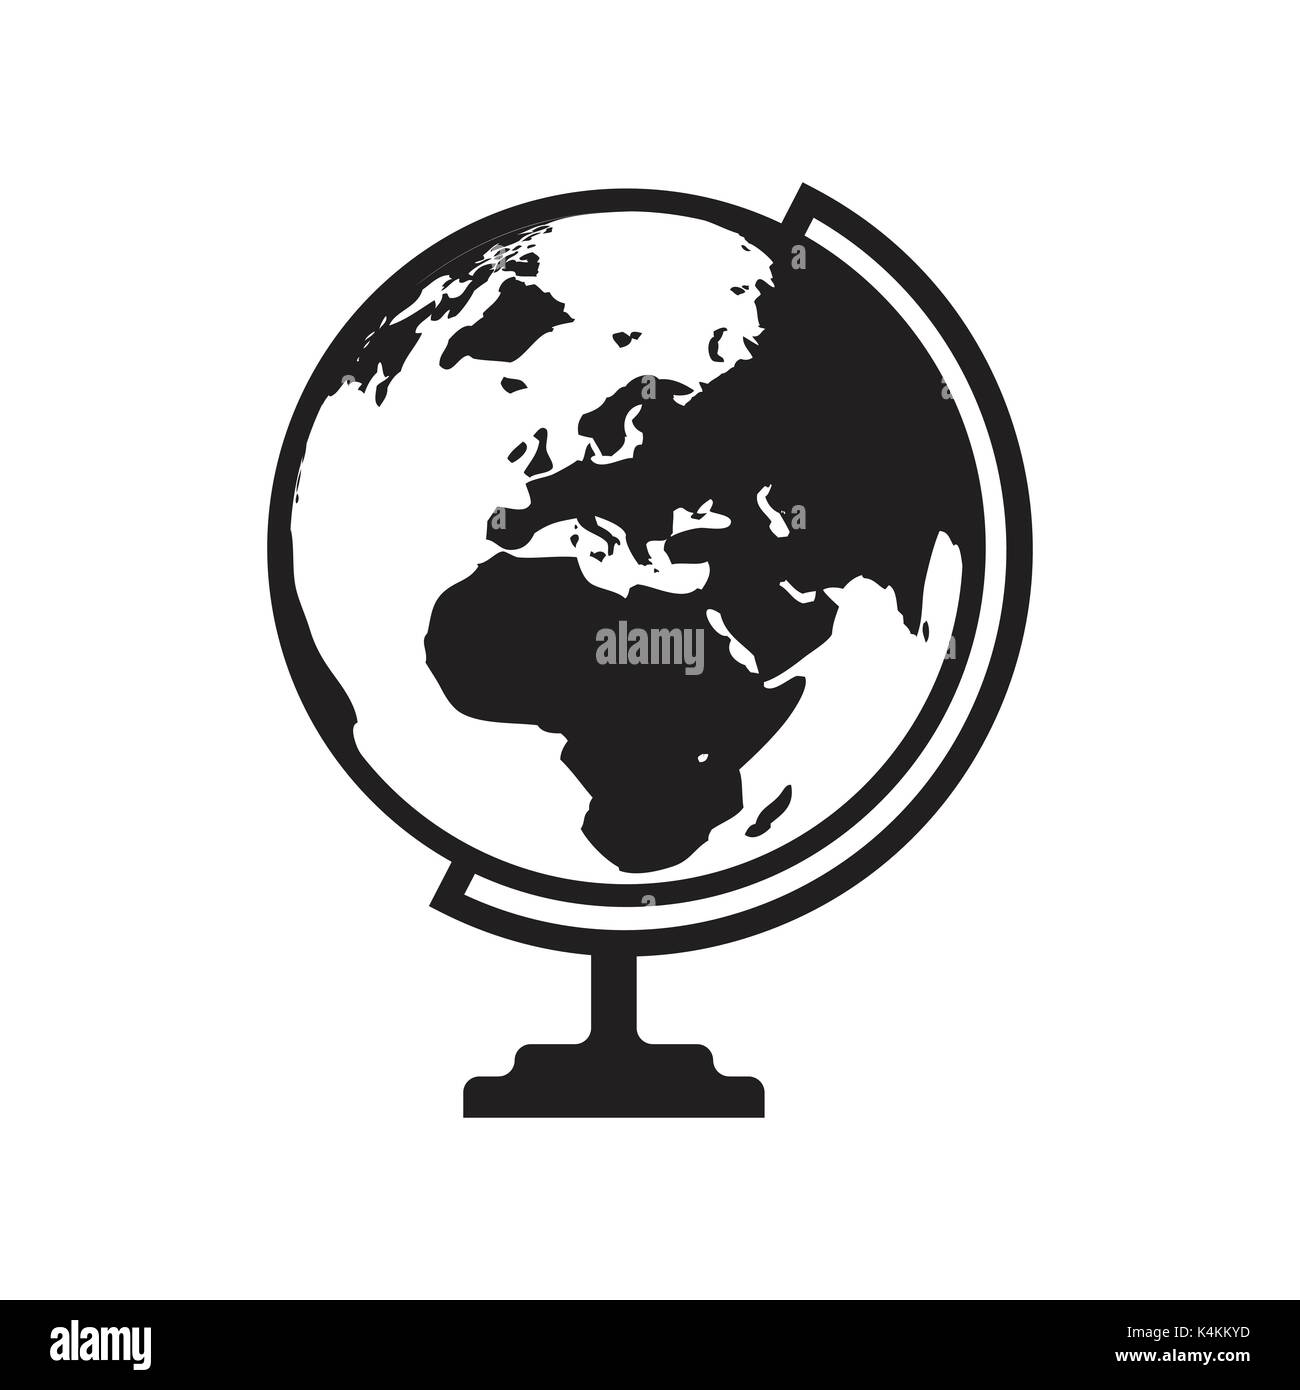 Globe icon vector with Asia Africa and Europe map. Flat icon isolated on the white background. Vector illustration. - Stock Image